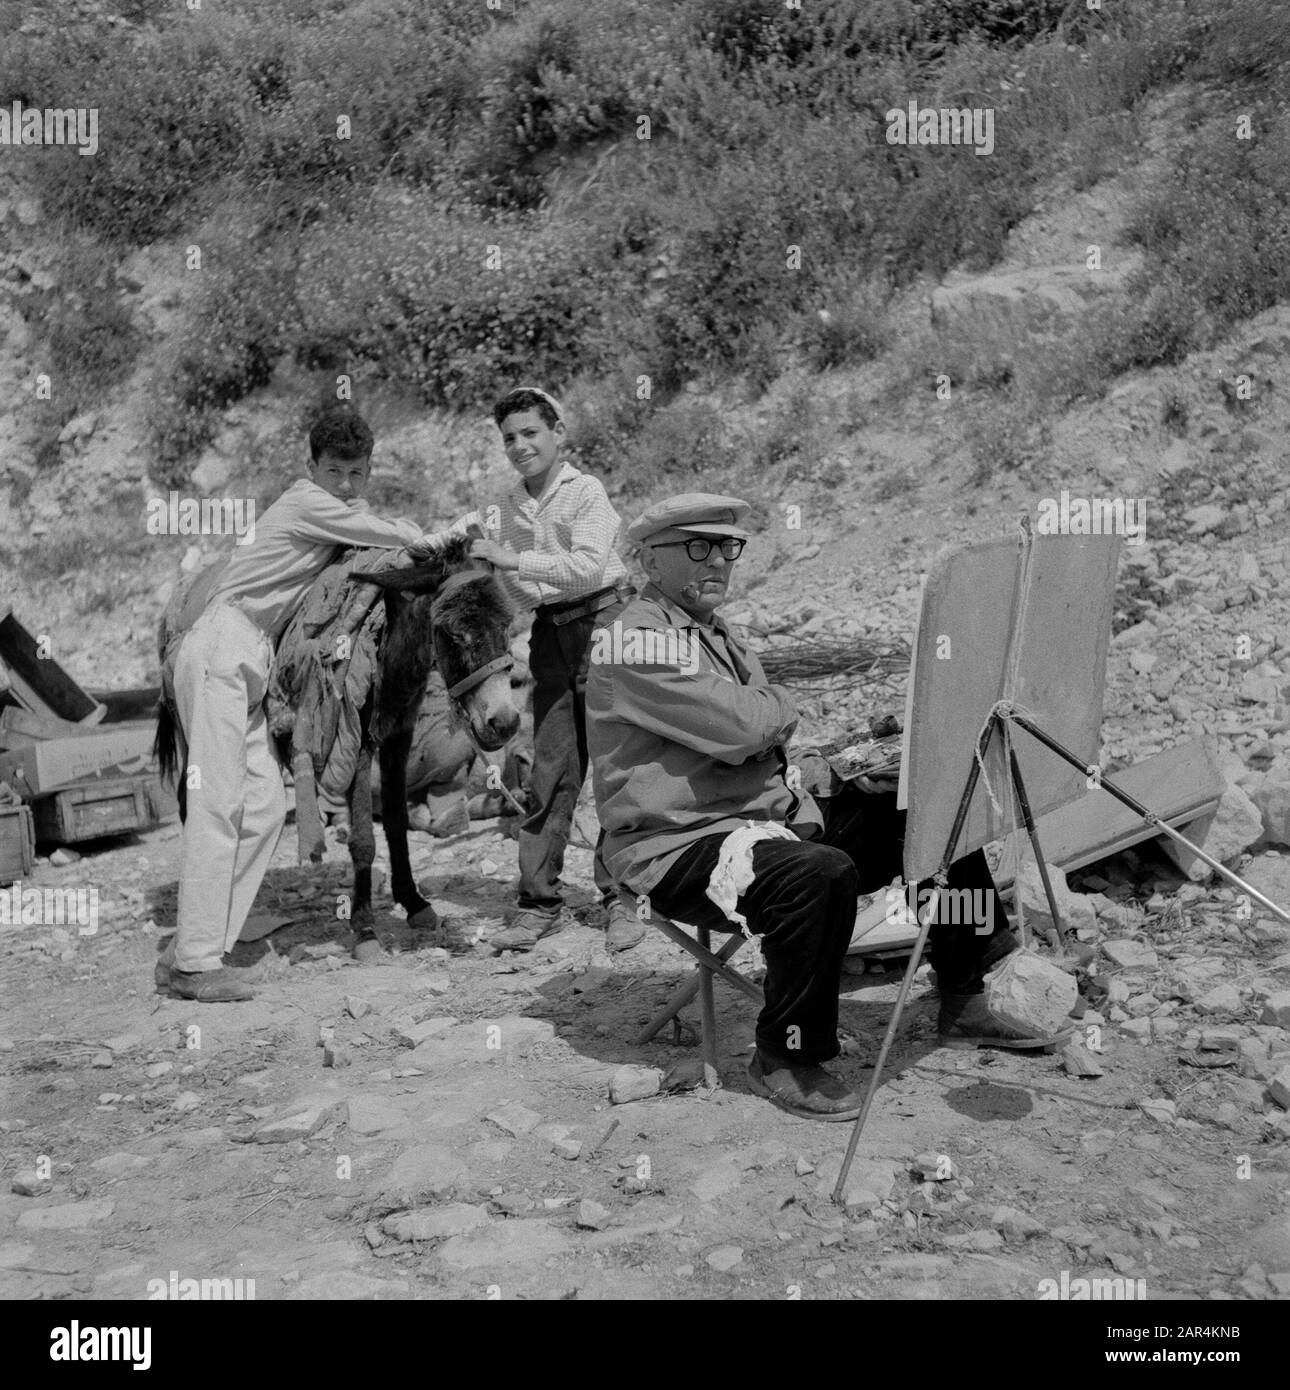 An artist at work on the street in Safad (Safed). Two little boys with a donkey watch Date: undated Location: Israel, Safad, Safed Keywords: visual artists, donkeys, children, street images Stock Photo